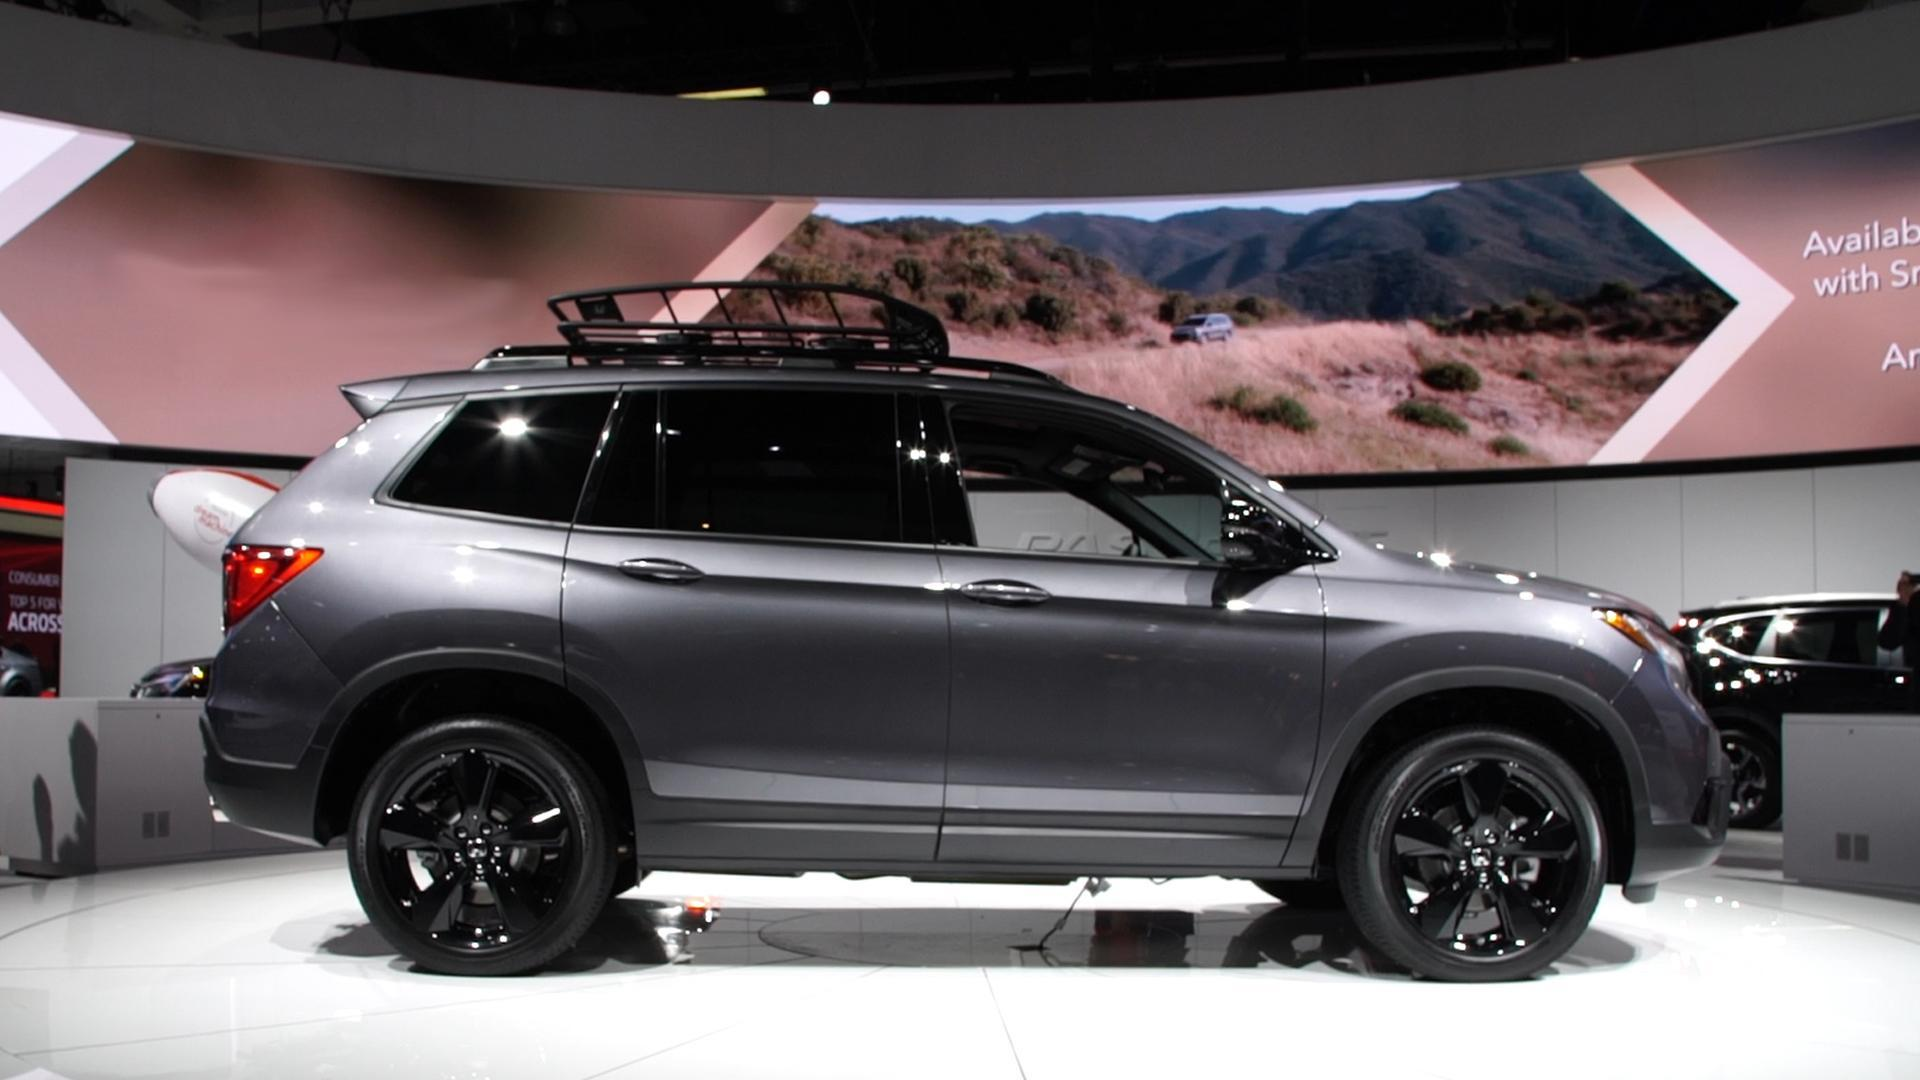 New 2019 Honda Passport Takes Aim At Adventure Seekers